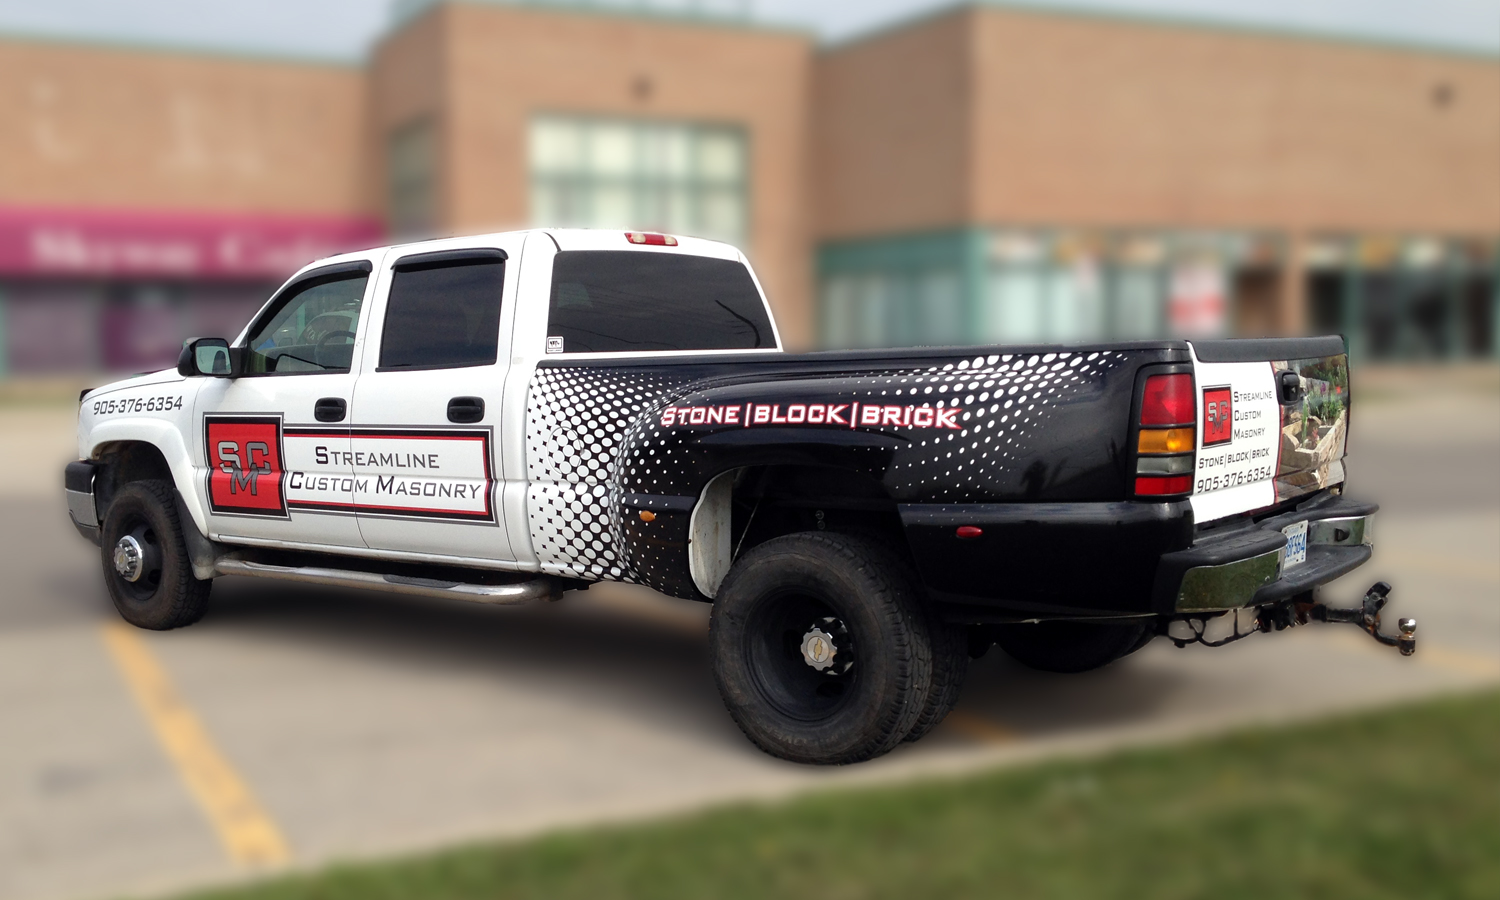 Fleet Graphics And Commercial Vehicle Wraps Mad Graphics - Truck bed decals customat superb graphics we specialize in custom decalsgraphics and